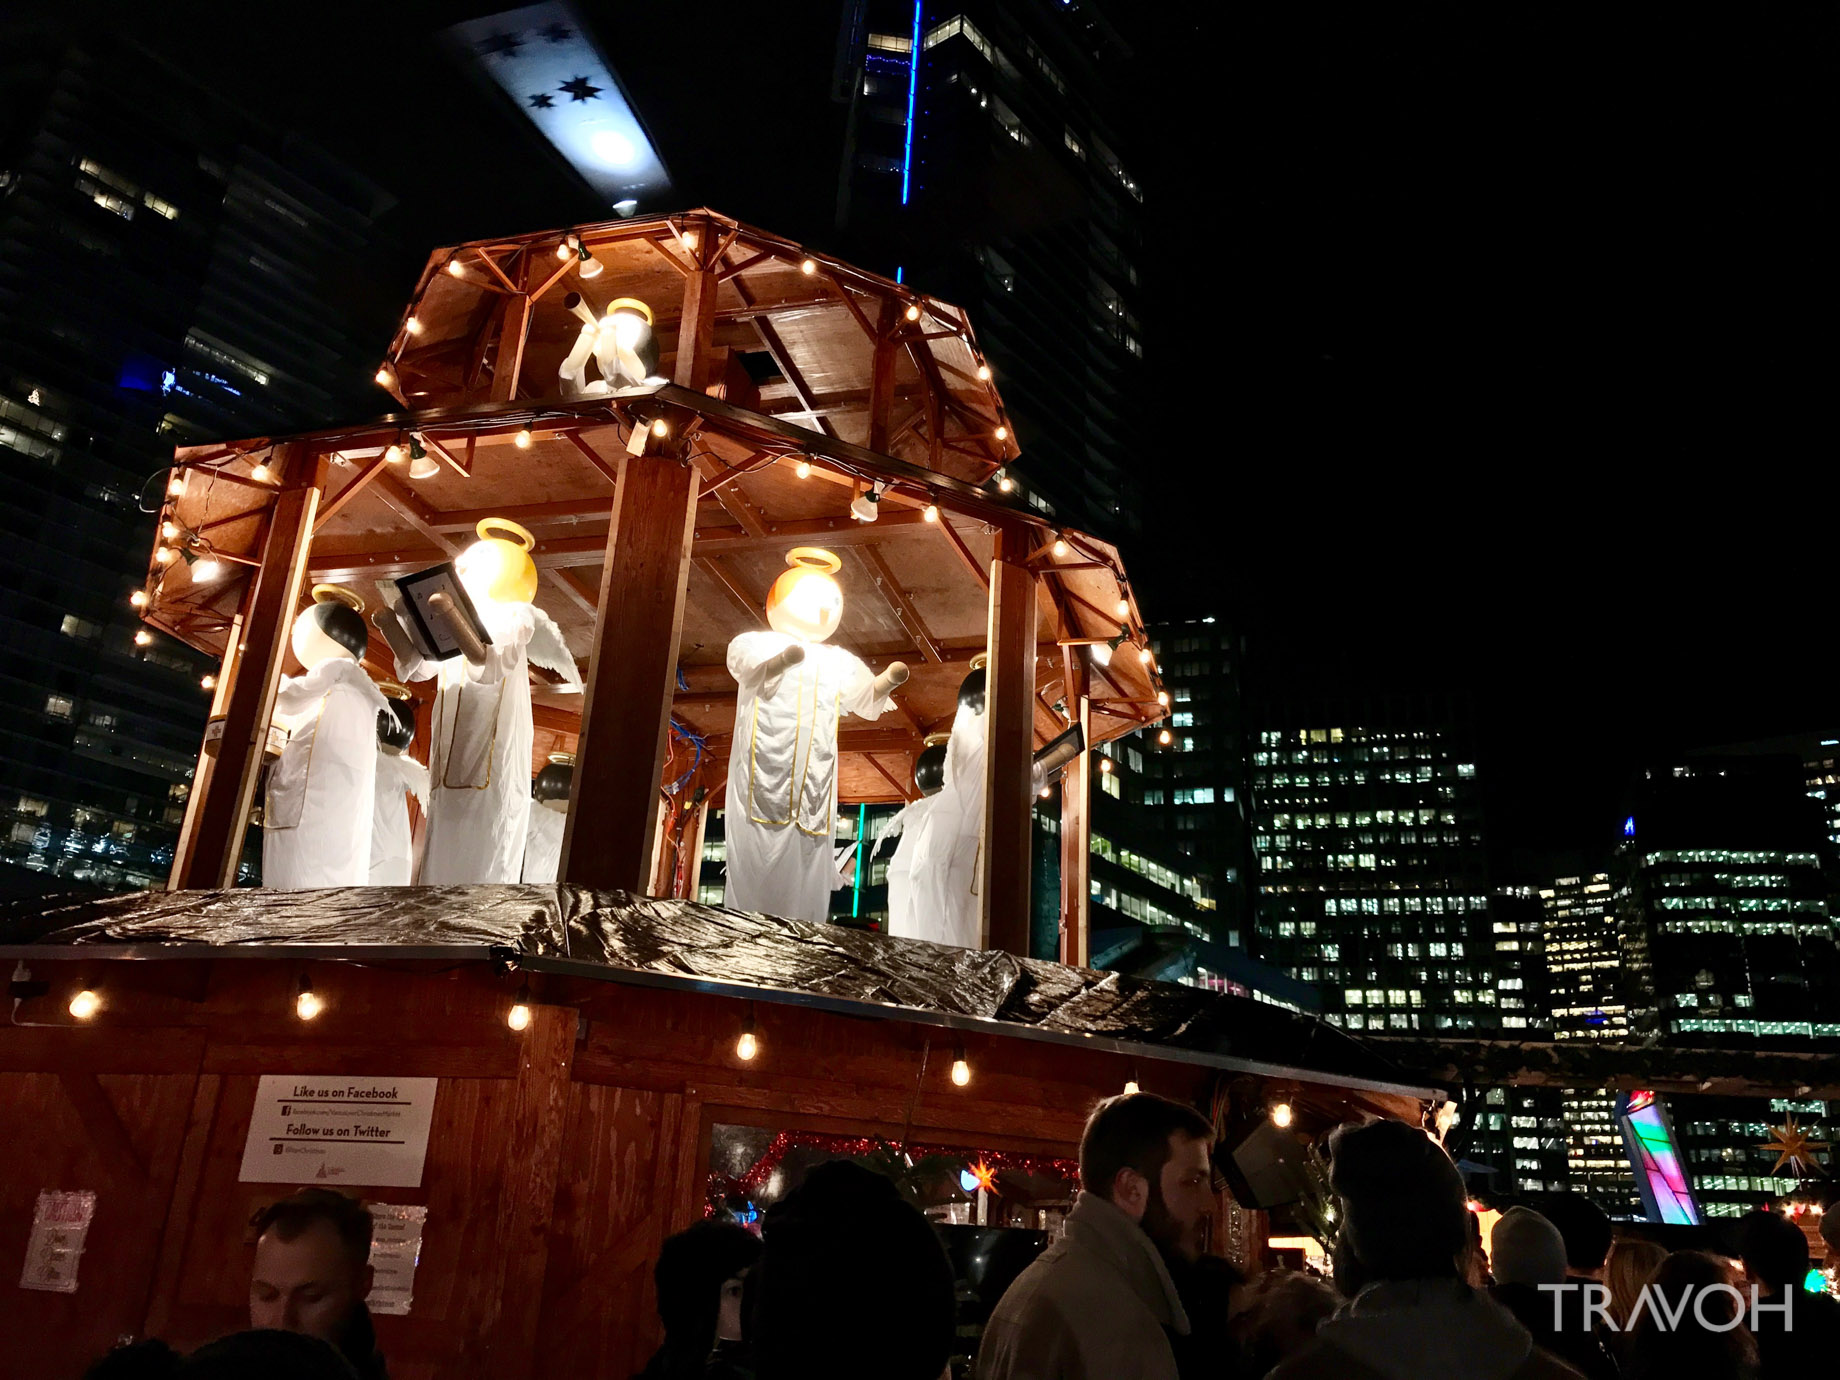 7th Annual Vancouver Christmas Market - A Very Merry German-Inspired Holiday Cheer